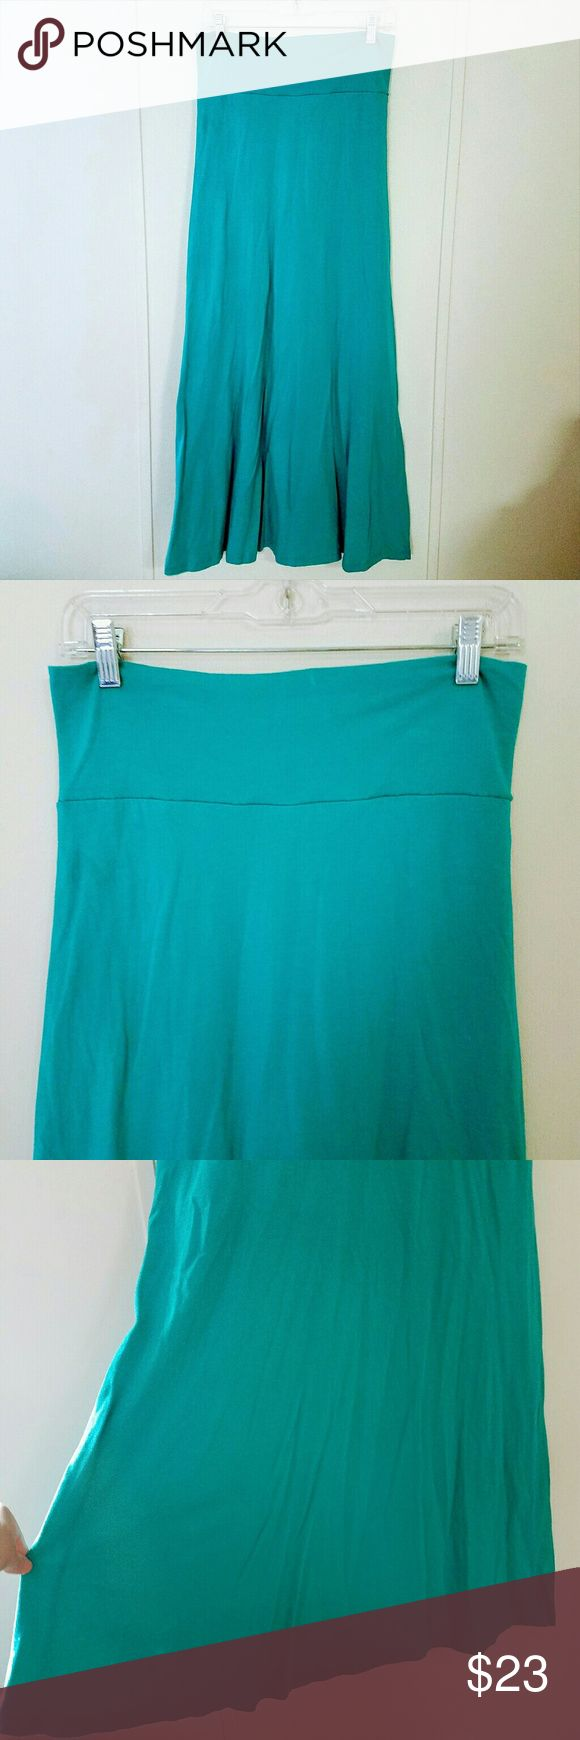 """Threads 4 Thought Turquoise Maxi Skirt Threads 4 Thought organic cotton maxi skirt.  Has lining that is shorter than skirt.  Stretchy and super comfy!  Tag says the color is """"Harbor"""", basically a turquoise color.  Gently used and in excellent condition!  Size Medium   60% Organic Cotton, 40% Modal Threads 4 Thought Skirts Maxi"""